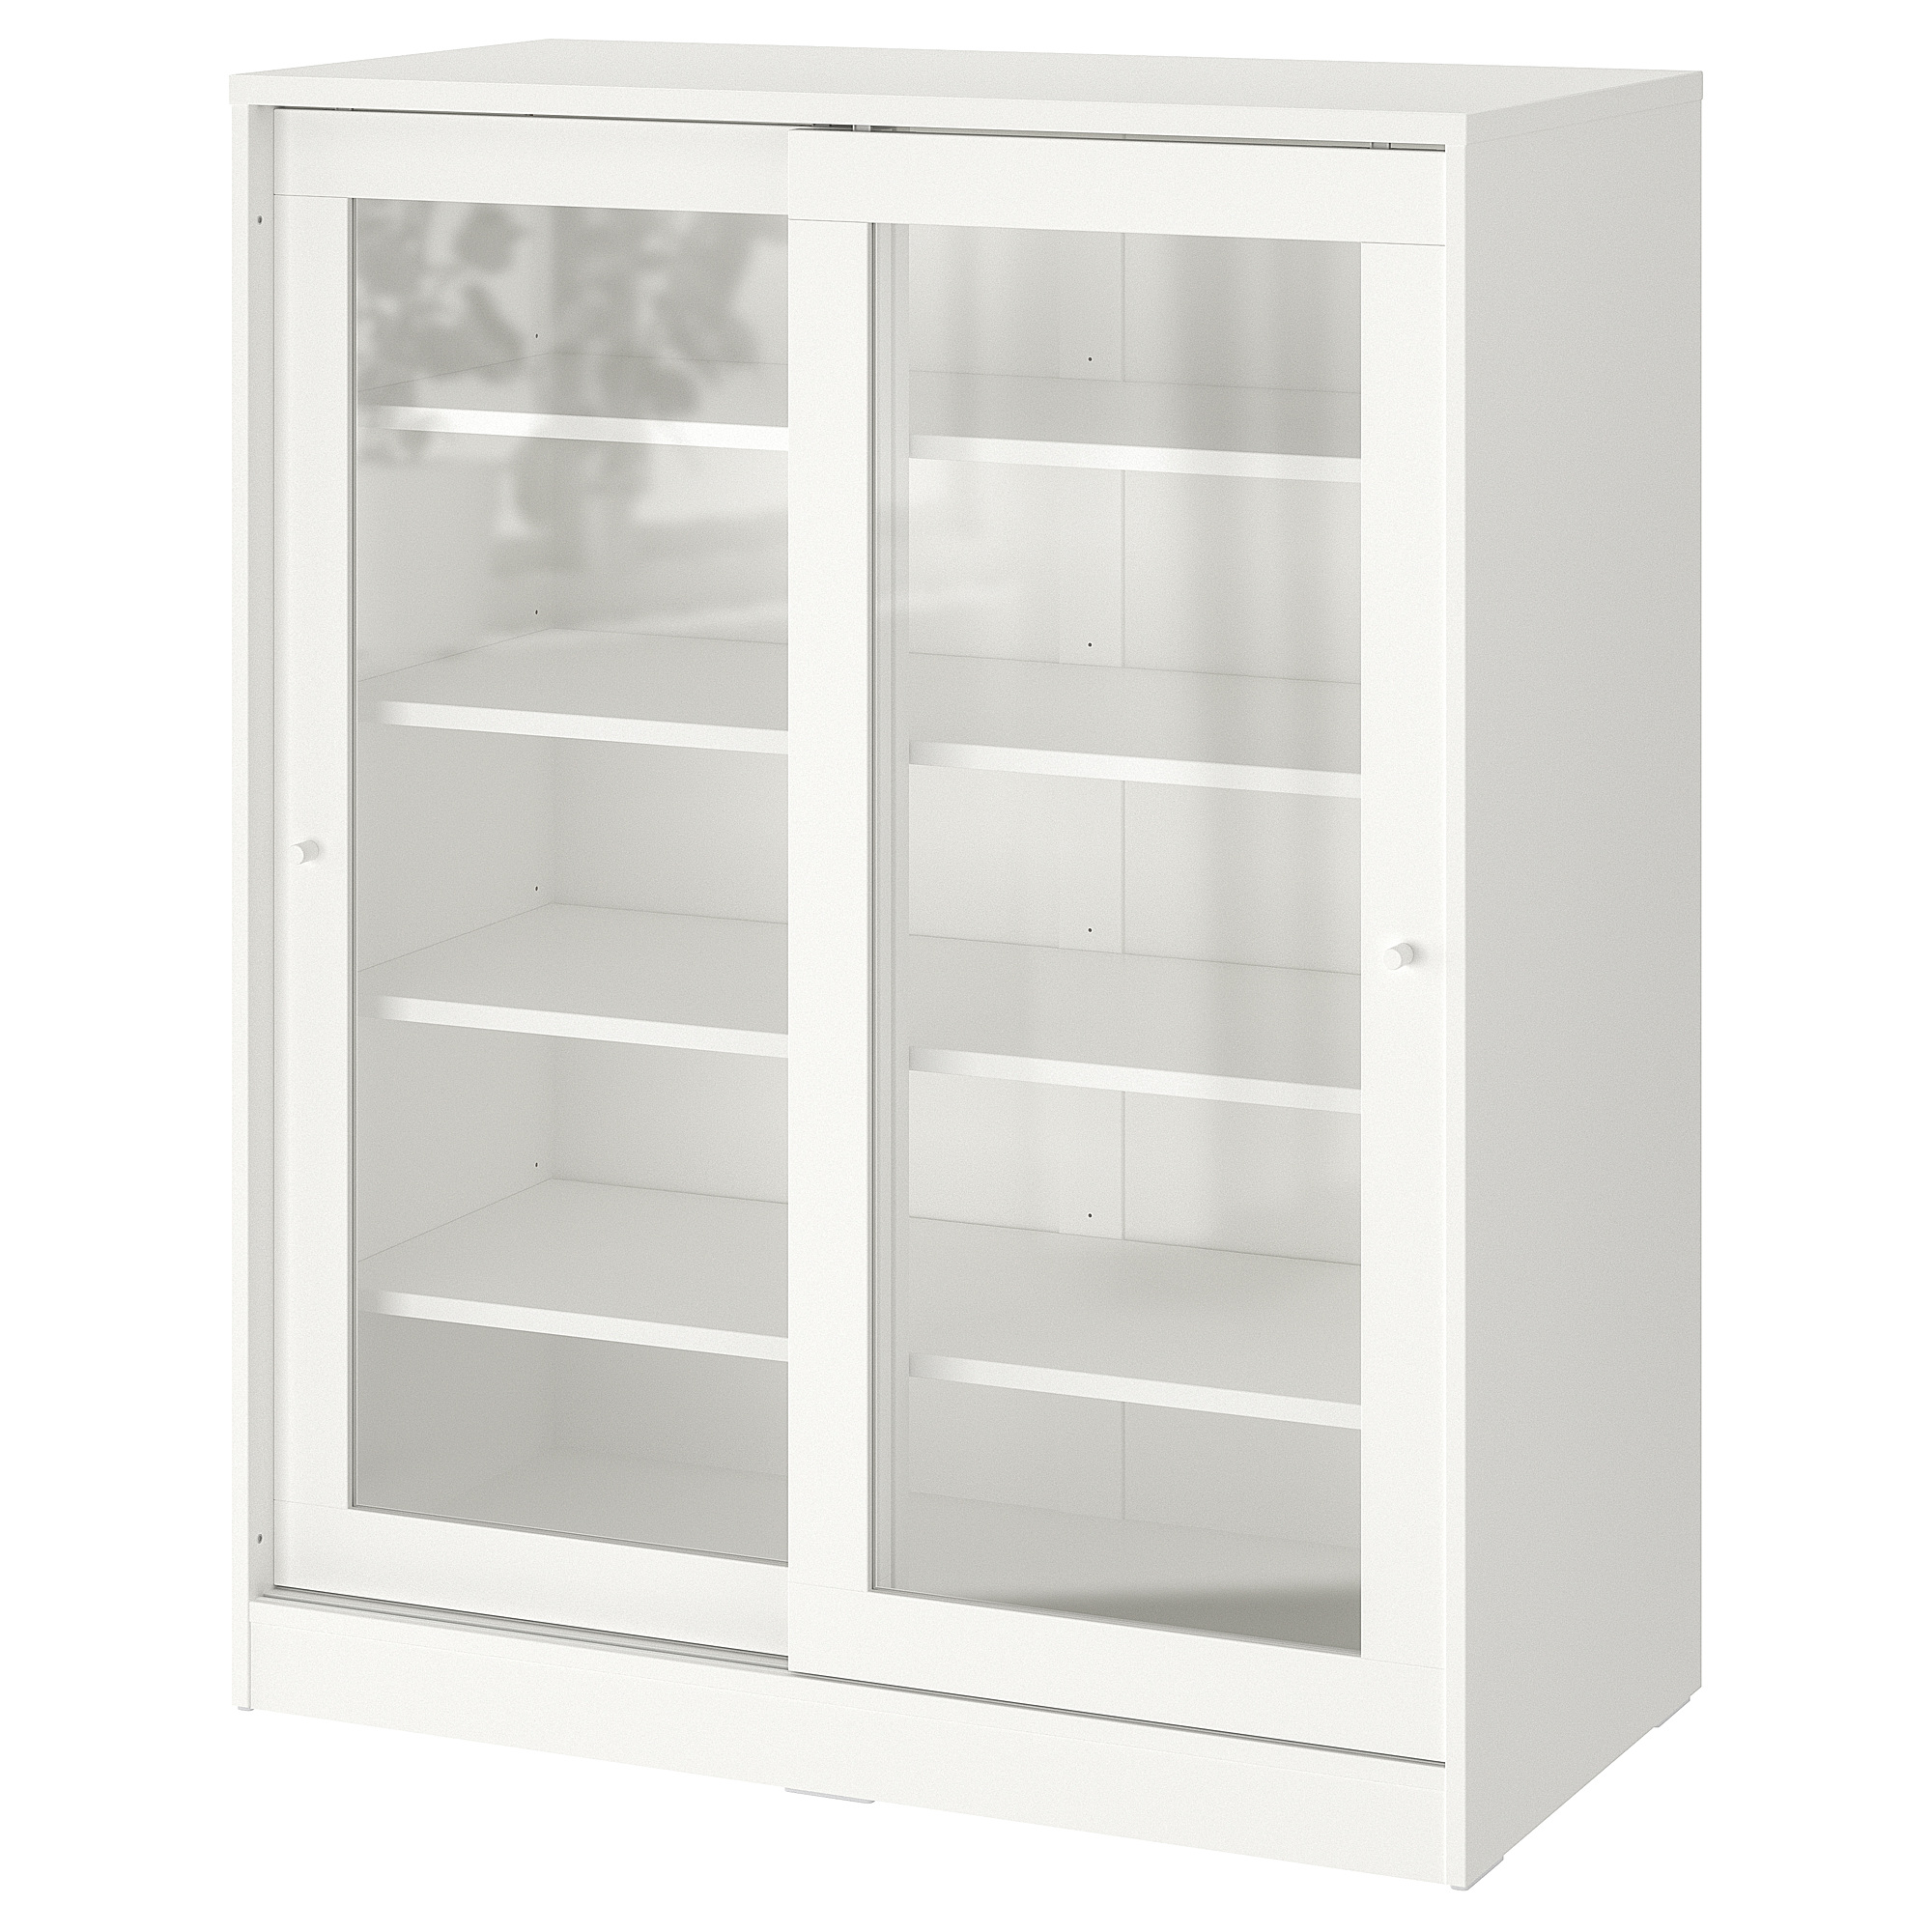 Syvde Cabinet With Glass Doors White Ikea Hong Kong